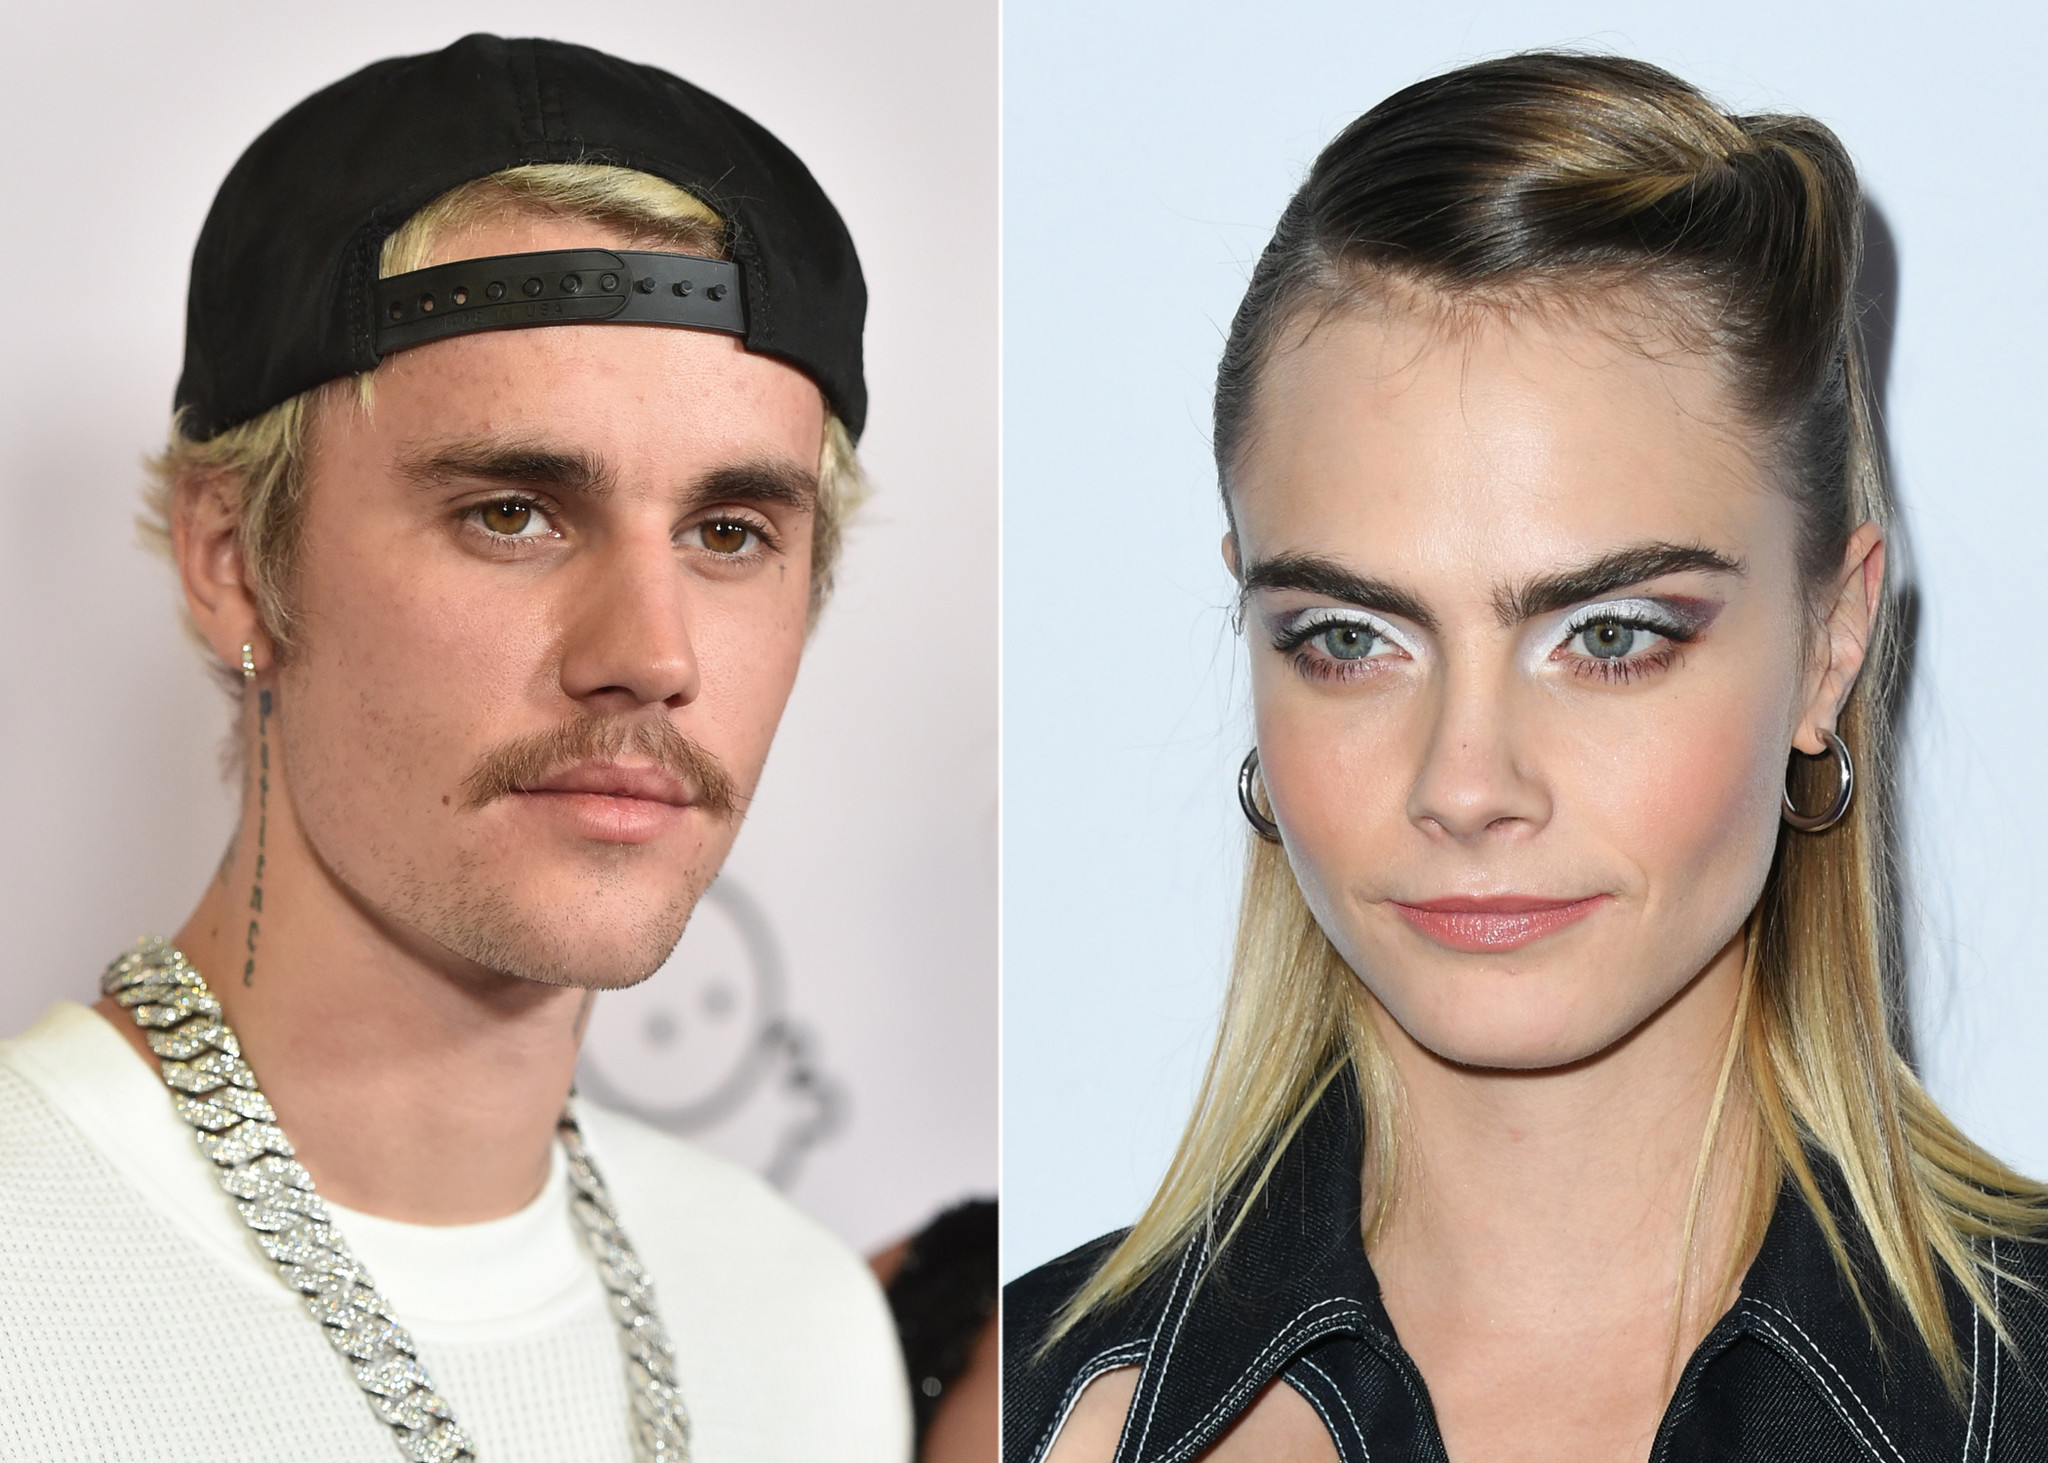 Justin Bieber slammed for naming Cara Delevingne his least favorite of wife Hailey's pals: 'Why don't you unblock me?'